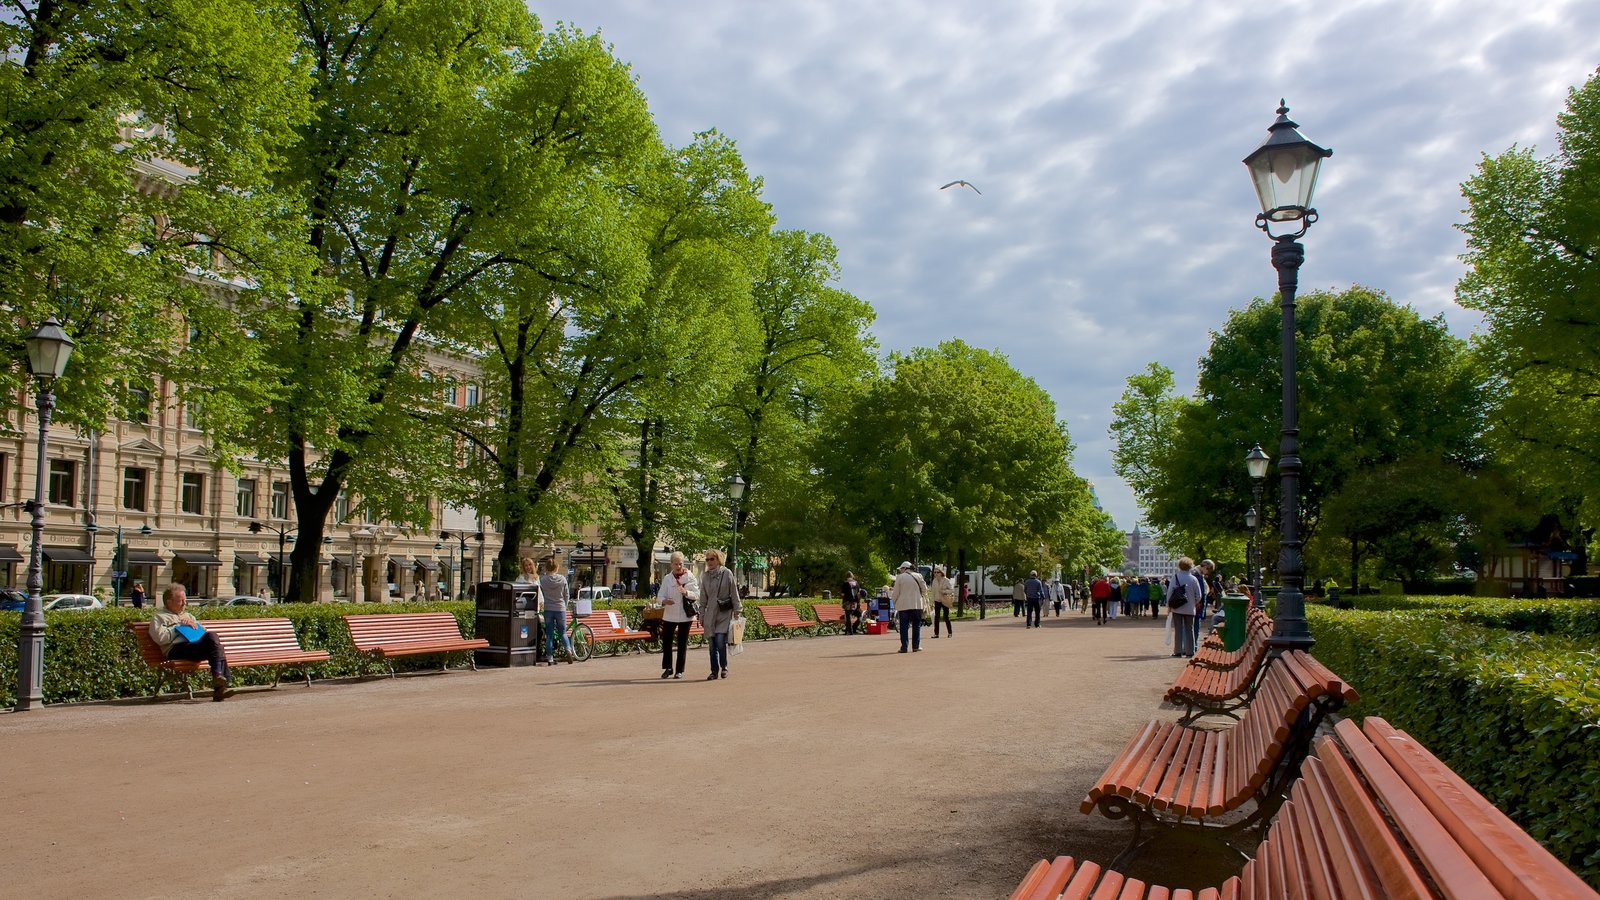 Esplanadi showing street scenes and a park